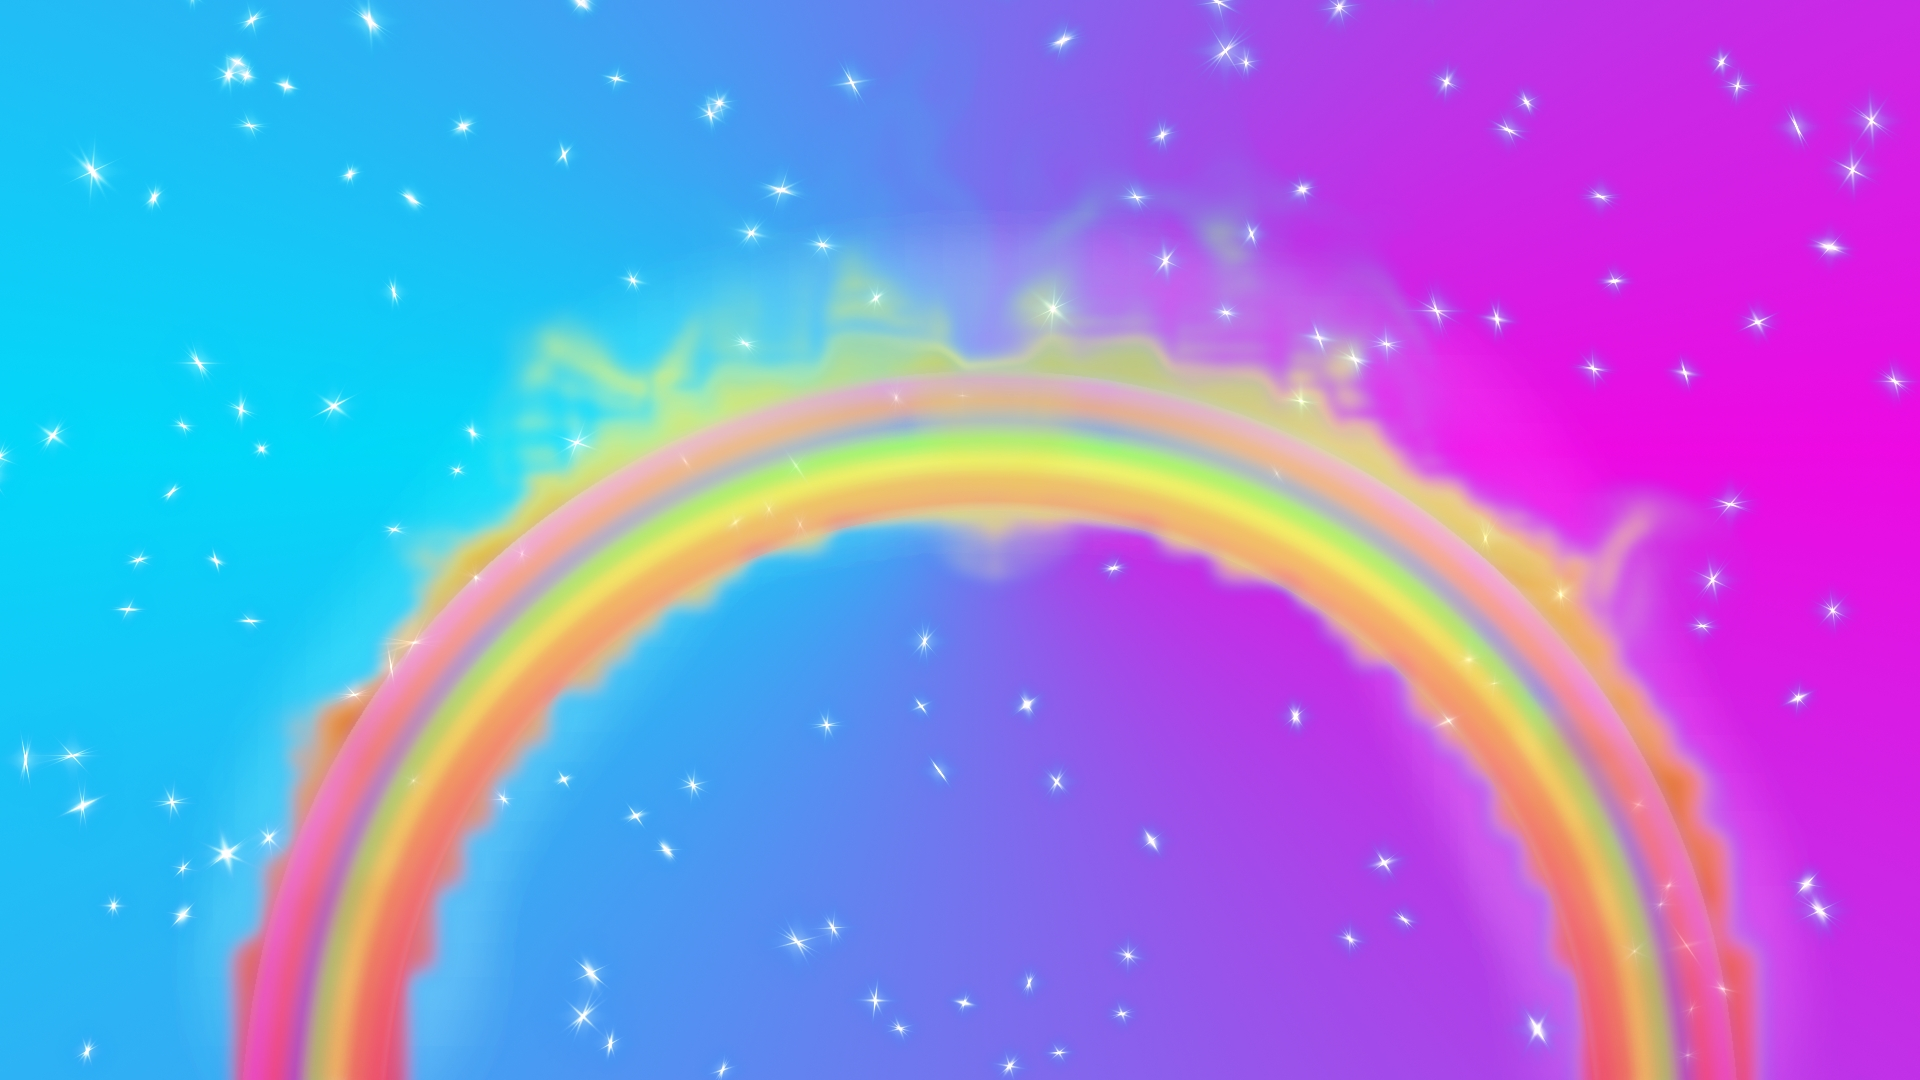 rainbow illustration wallpaper 1920x1080 - photo #8